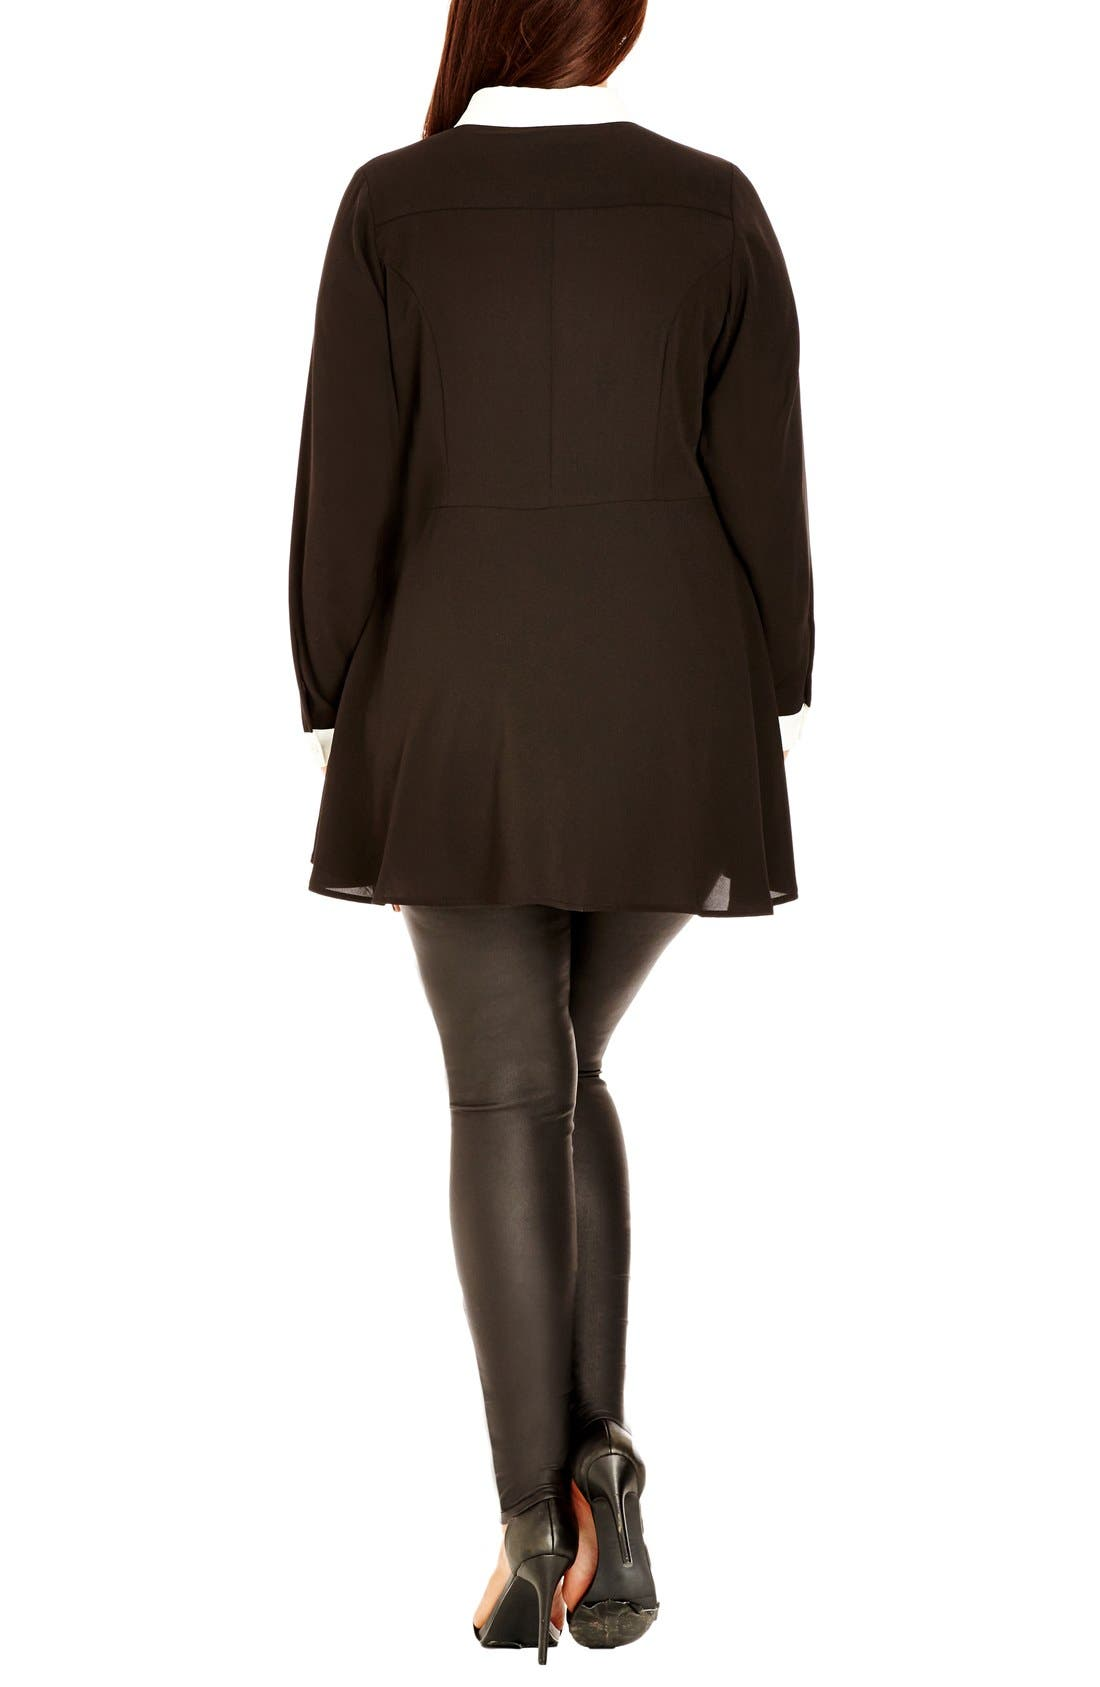 Alternate Image 2  - City Chic Contrast Trim Fit & Flare Shirt (Plus Size)